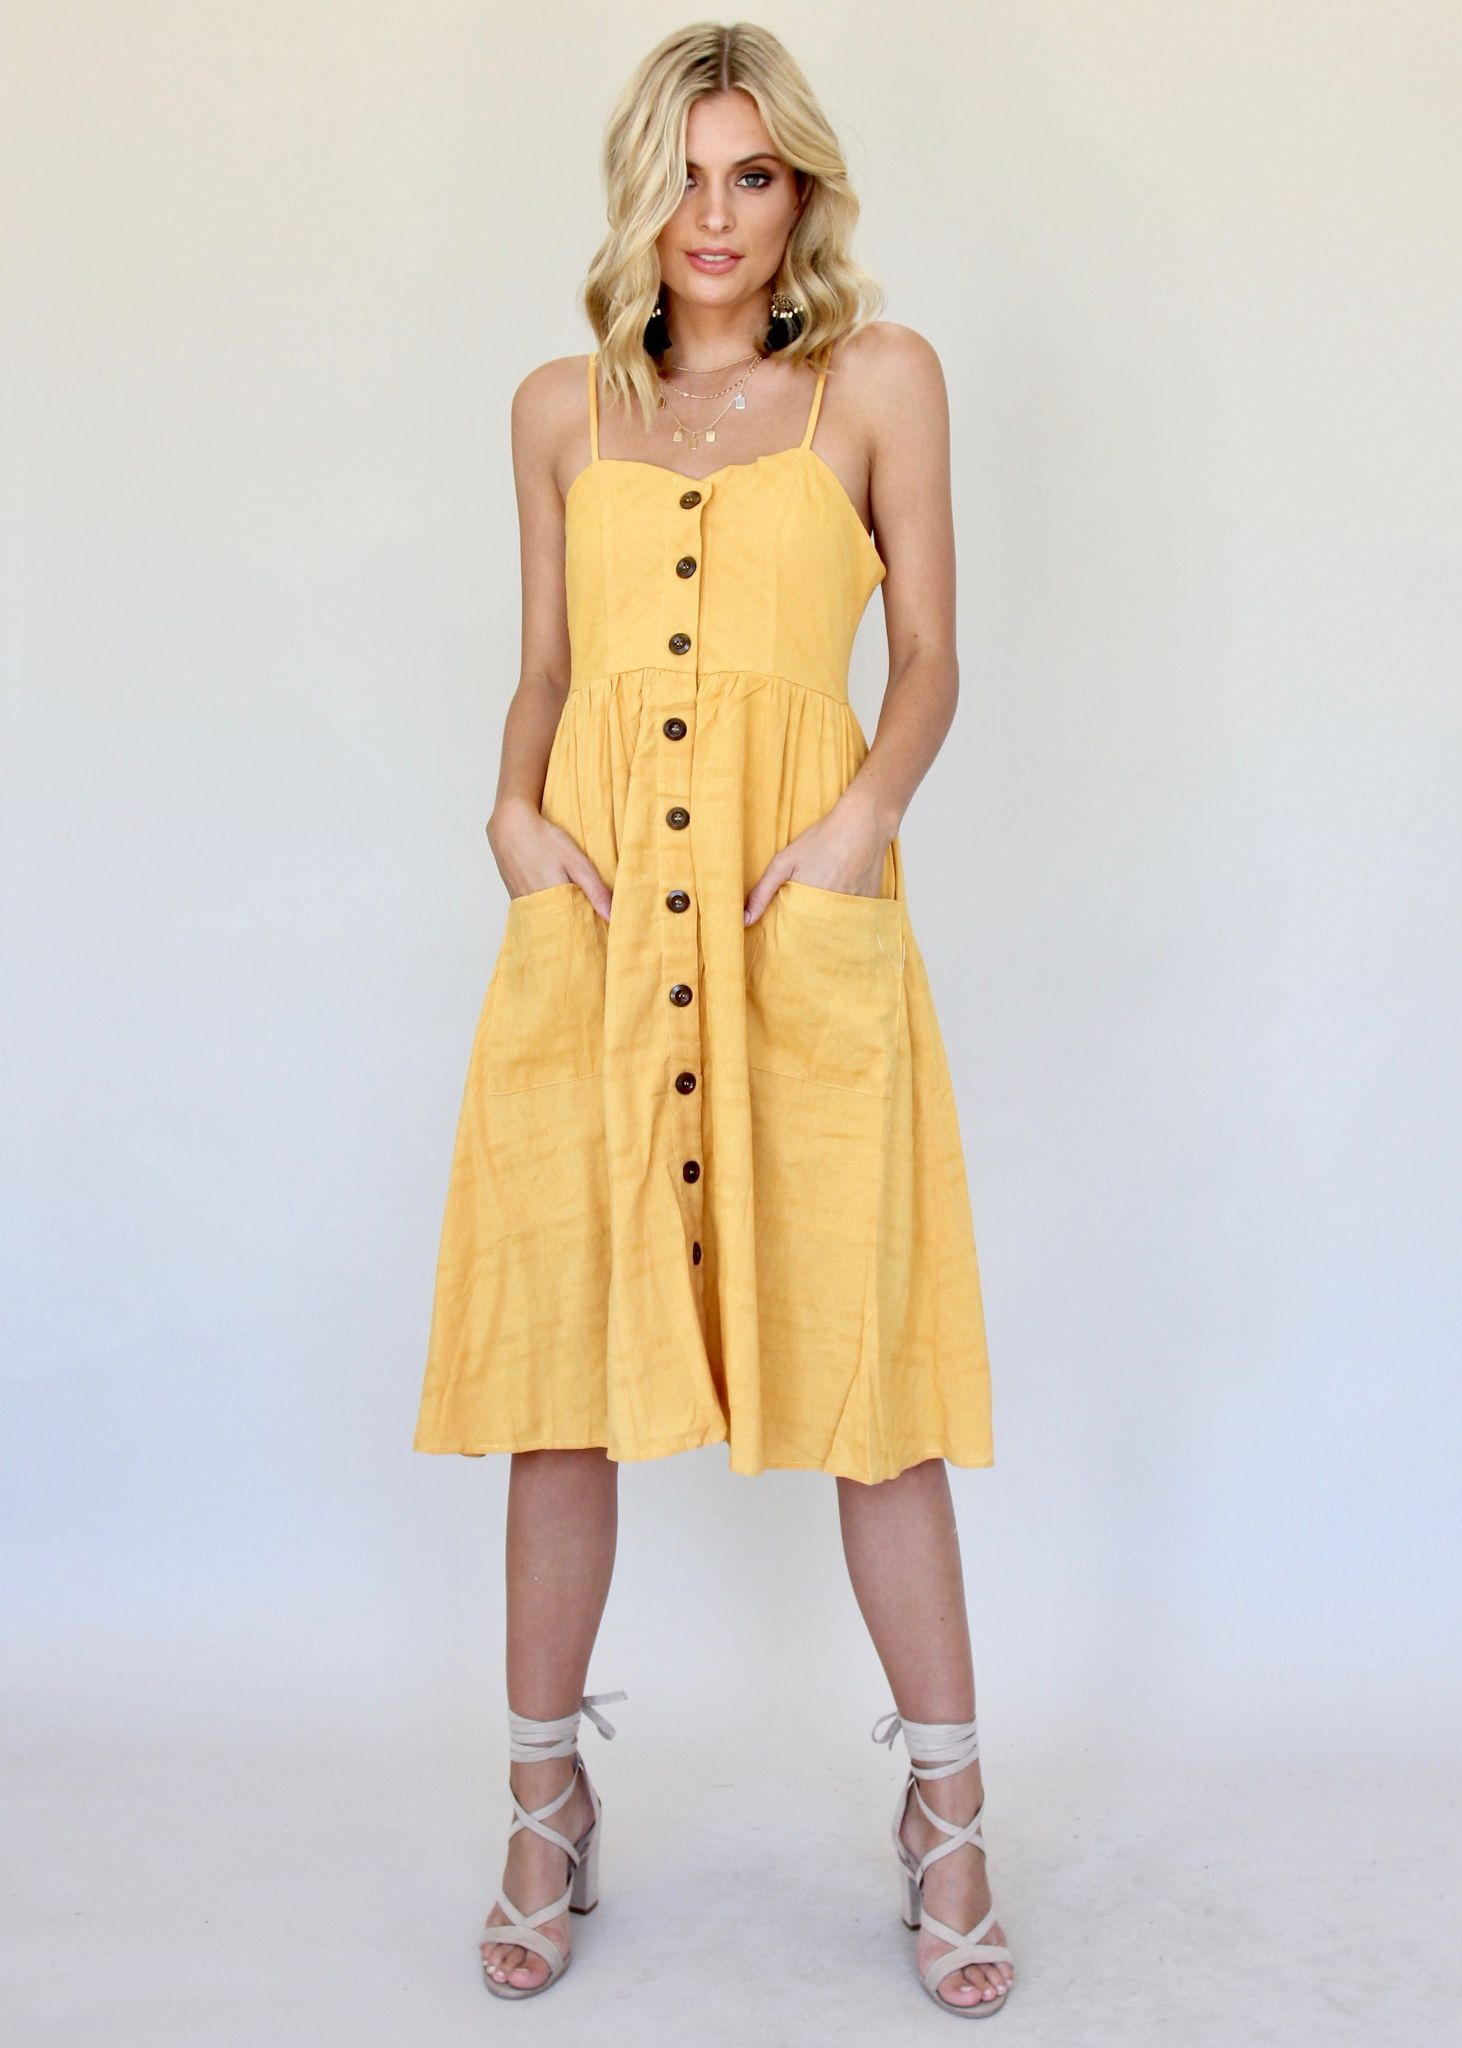 Utopia Midi Dress - Honey